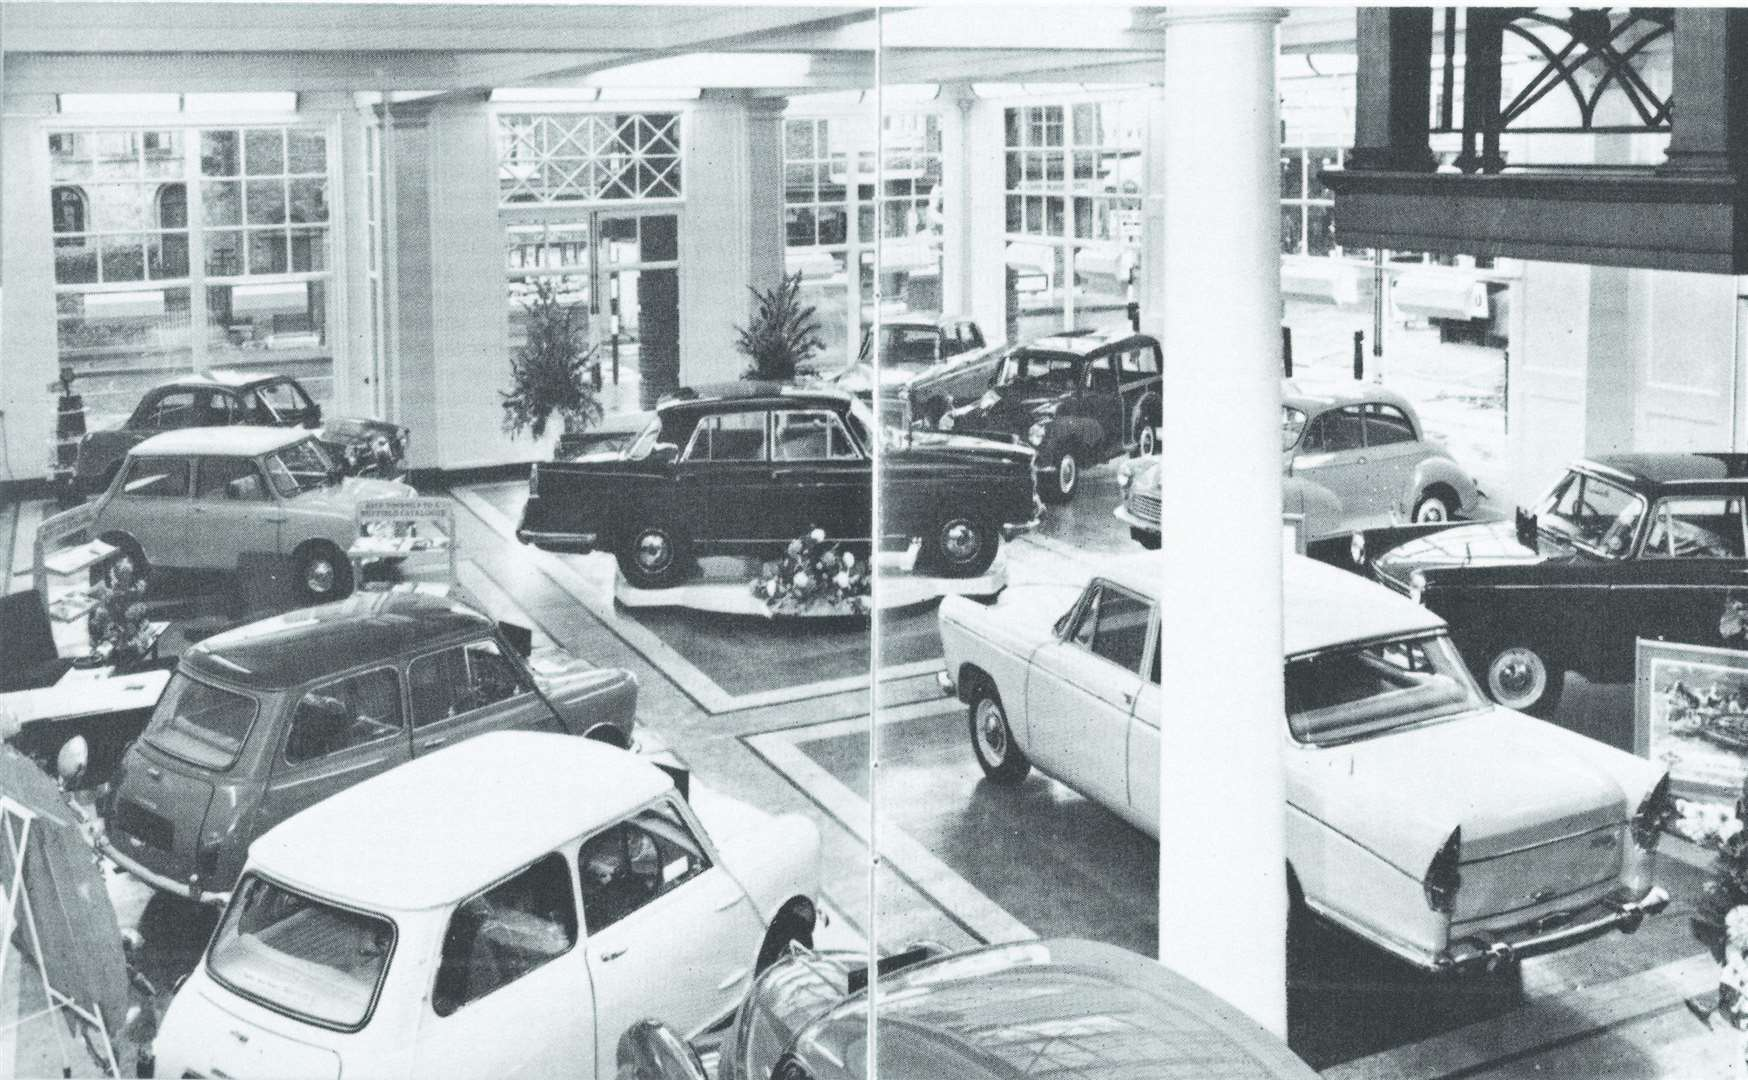 The Wetherspoon pub used to be a Beadles car showroom